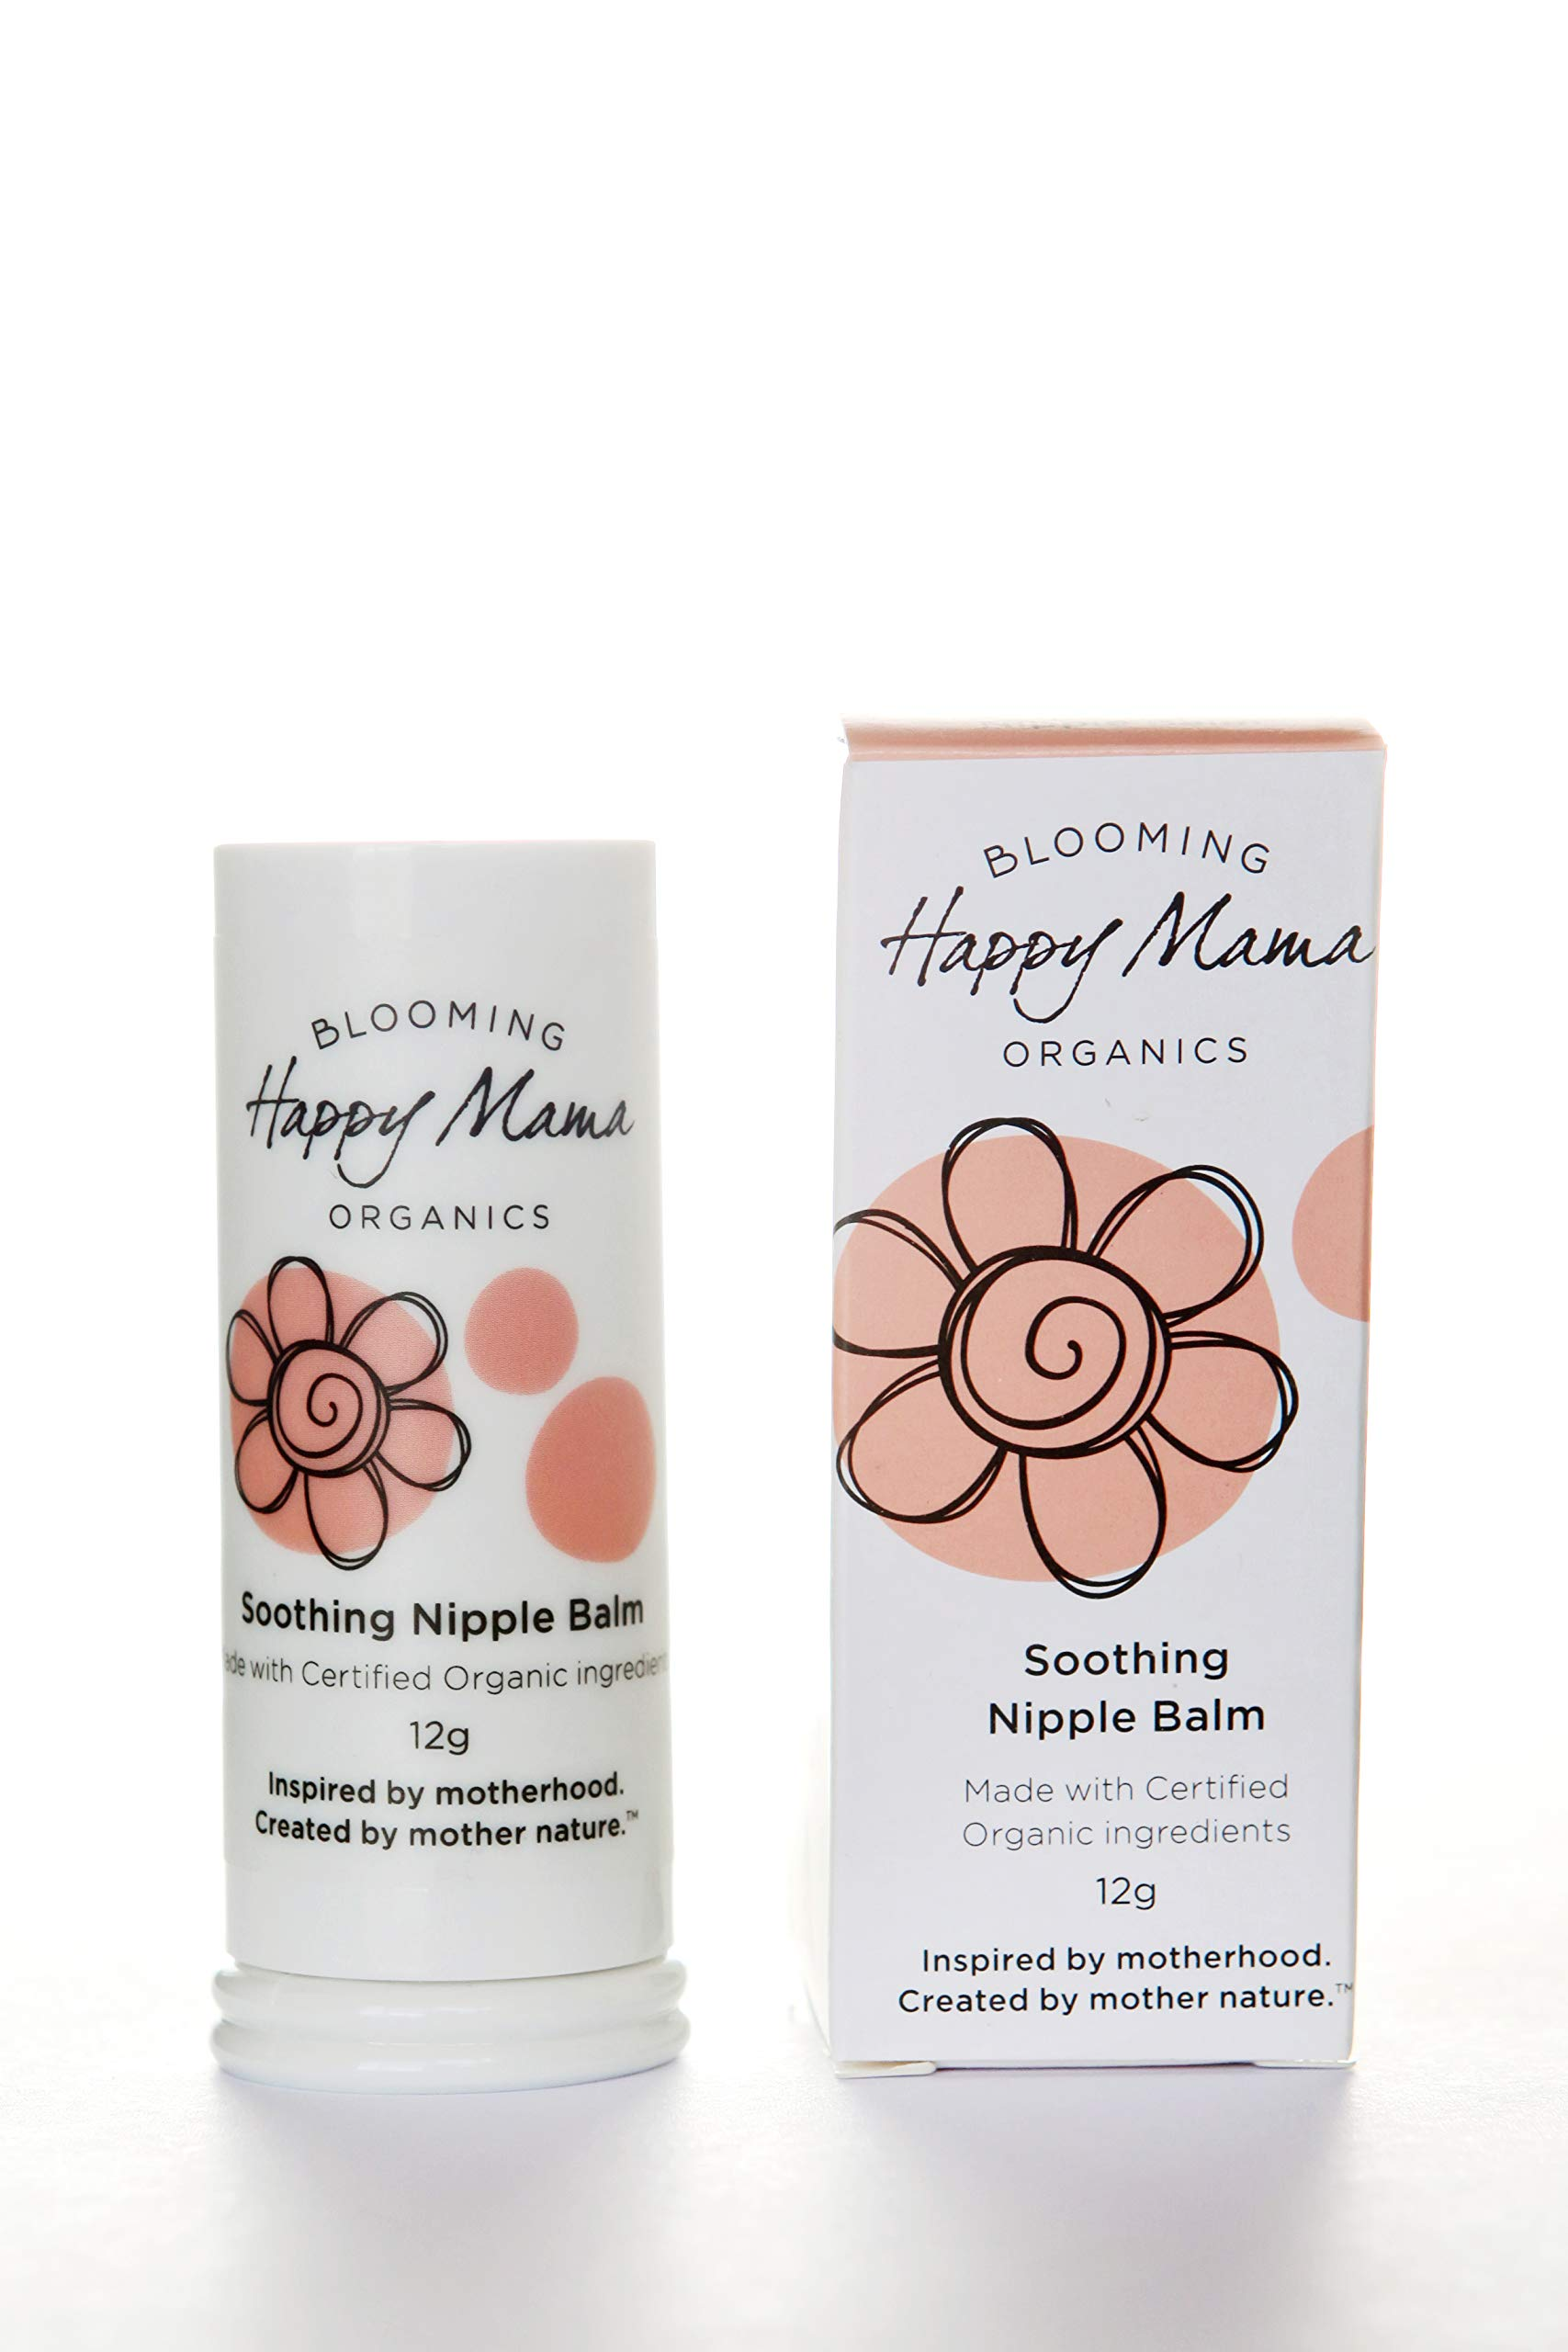 Happy Mama Organics, Soothing, Healing Relief for Sore, Cracked, Nursing Nipples. Organic, Natural Nipple Cream for Breastfeeding. Vegan, Lanolin and Beeswax Free. Safe for Baby, No Need to wash Off.